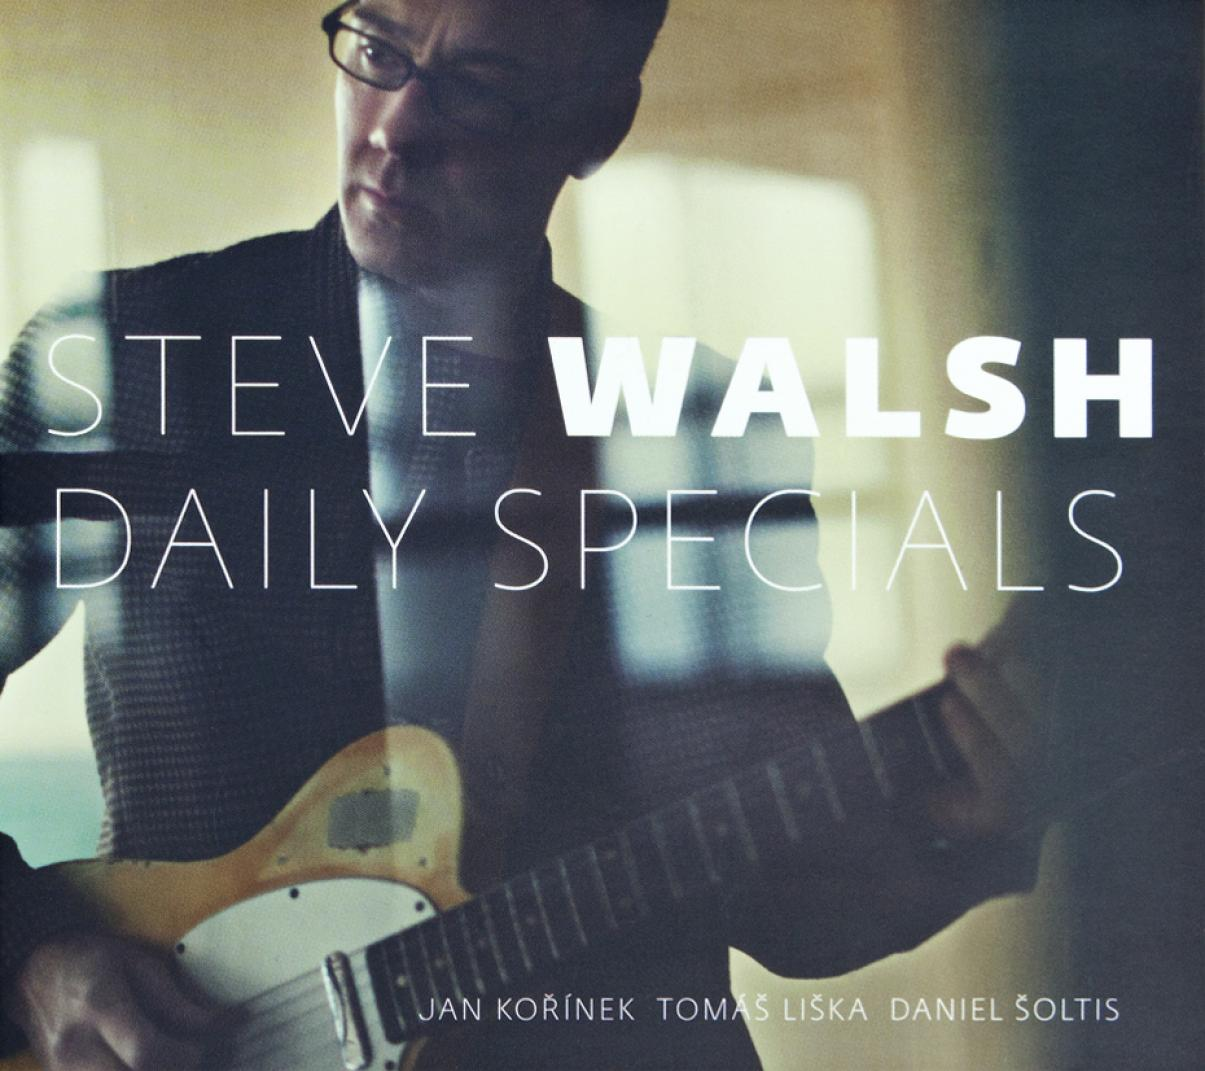 Steve Walsh: Daily Specials